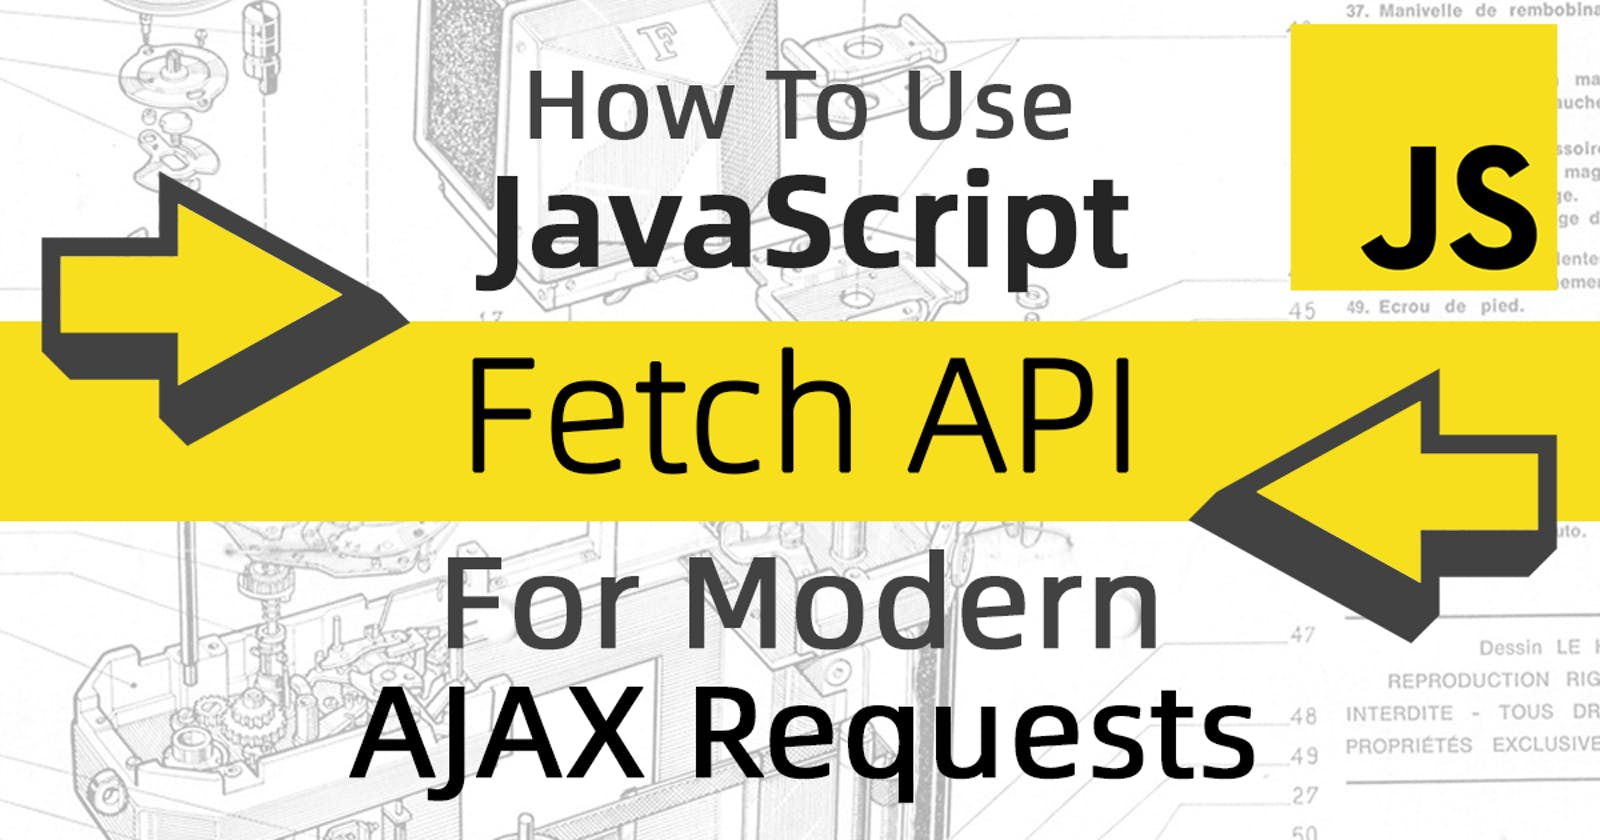 How To Use JavaScript Fetch API For Modern AJAX Requests